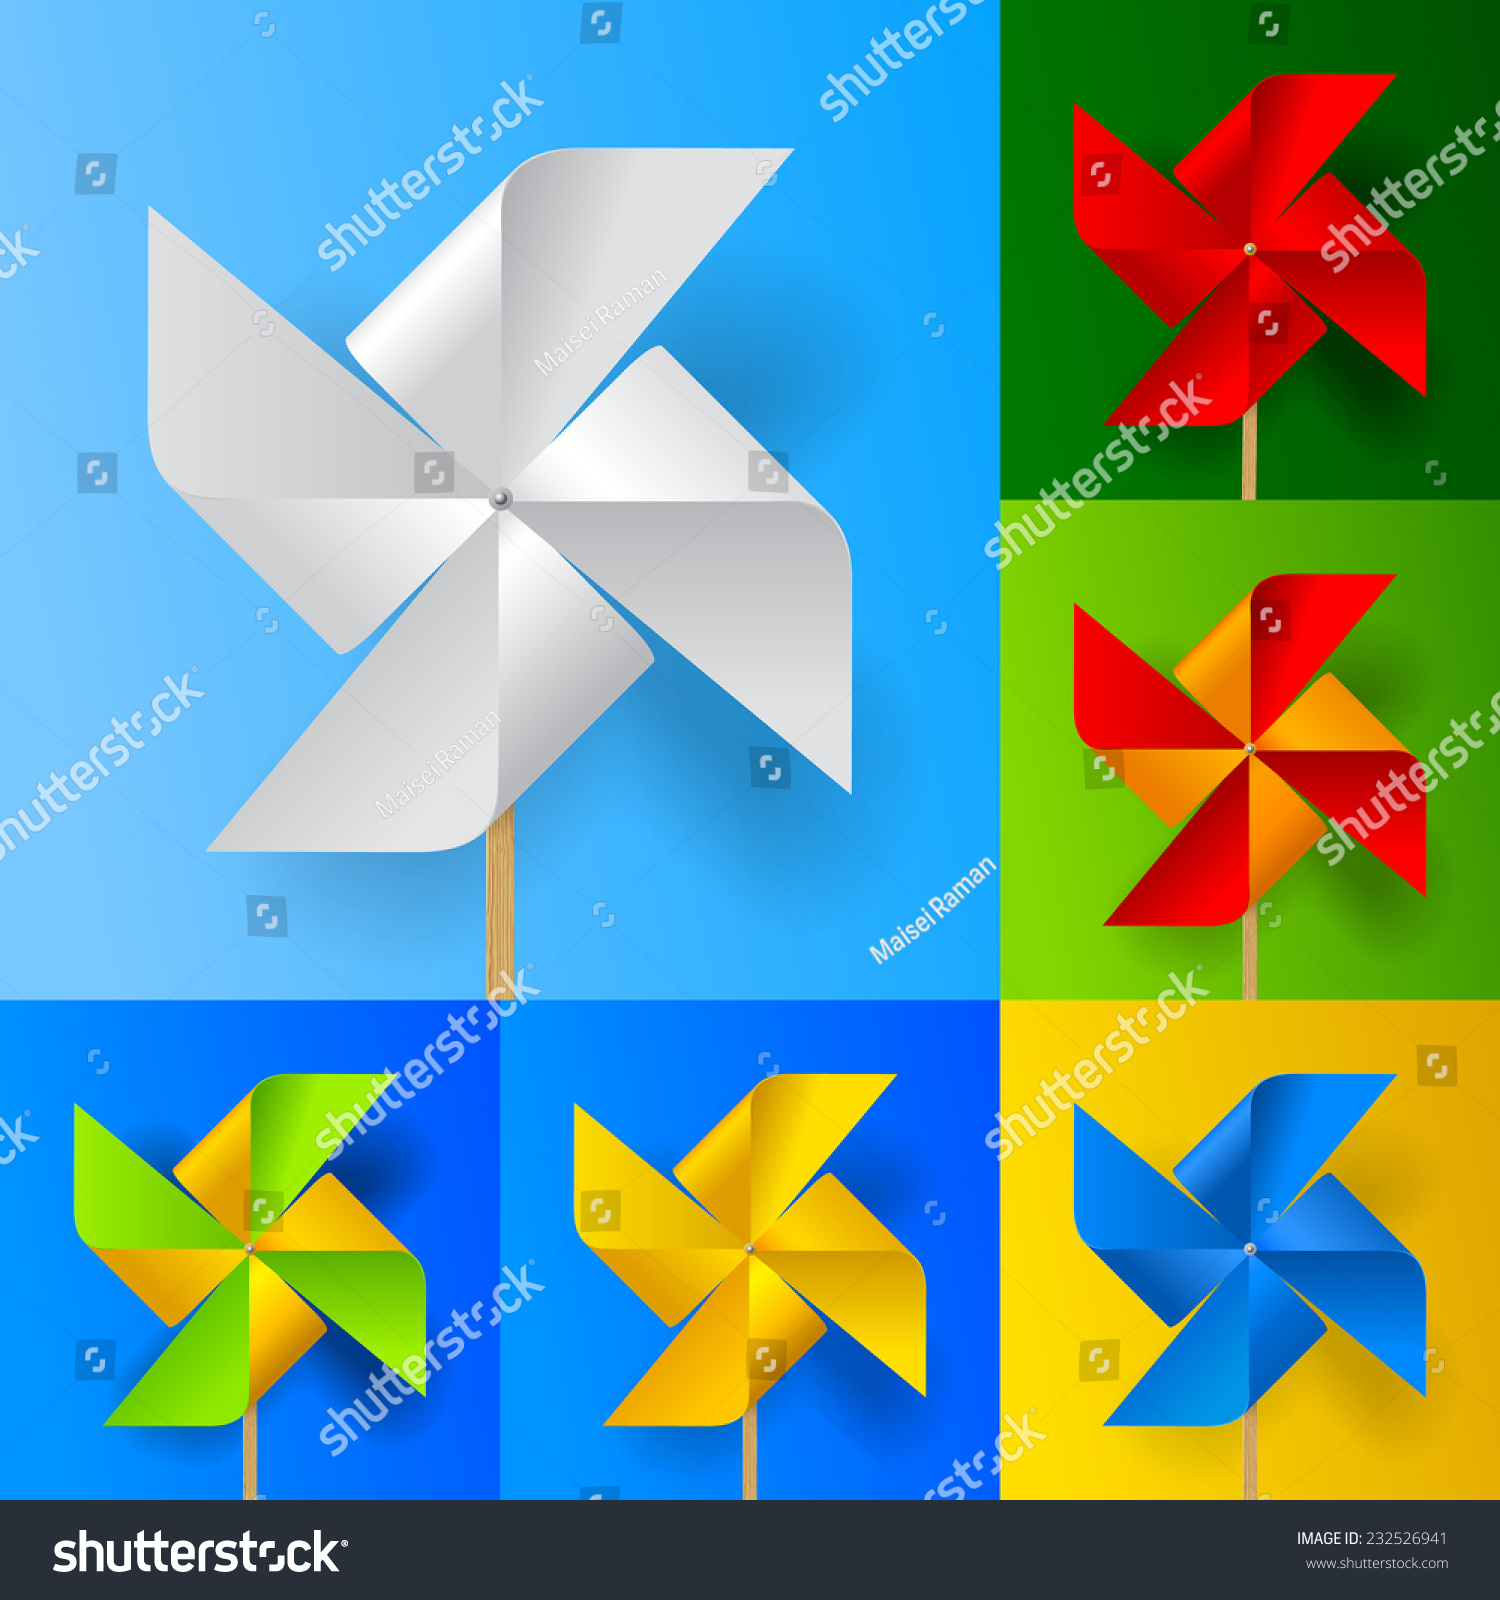 Multicolored Toy Paper Windmill Propeller Set On Backgrounds Of Different Colors Vector Illustration